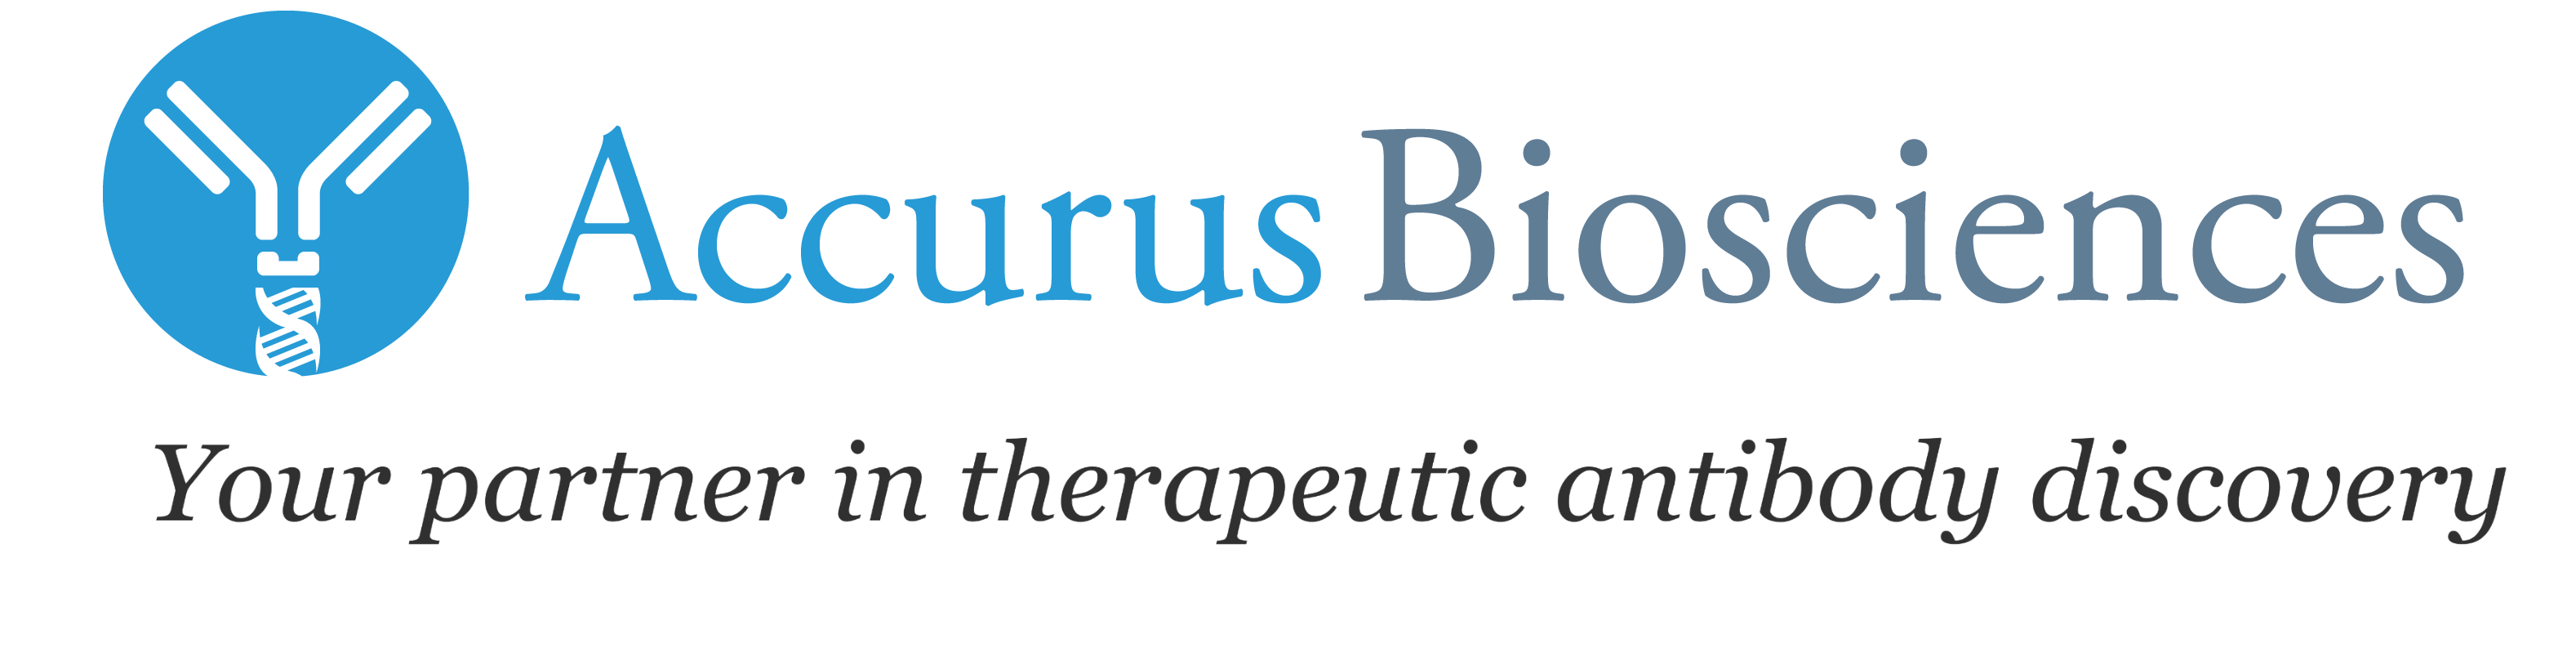 Accurus Biosciences Inc.